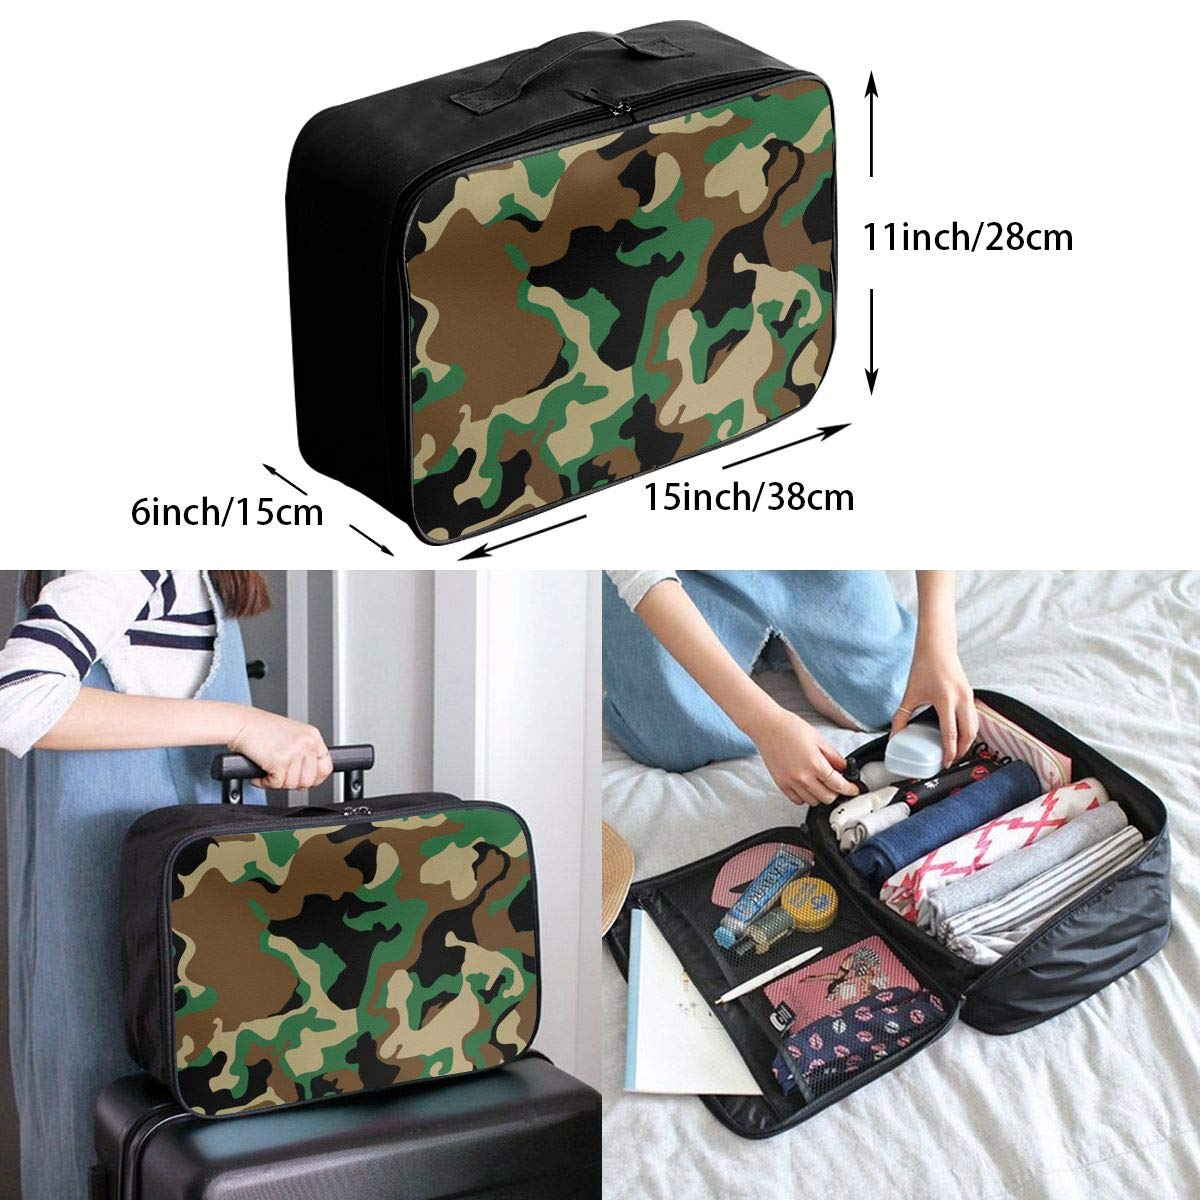 STWINW Military Camo Travel Fashion Lightweight Large Capacity Portable Waterproof Foldable Storage Carry Luggage Bag Luggage Duffle Tote Bag Hanging Travel Toiletry Bag Travel Makeup Bag